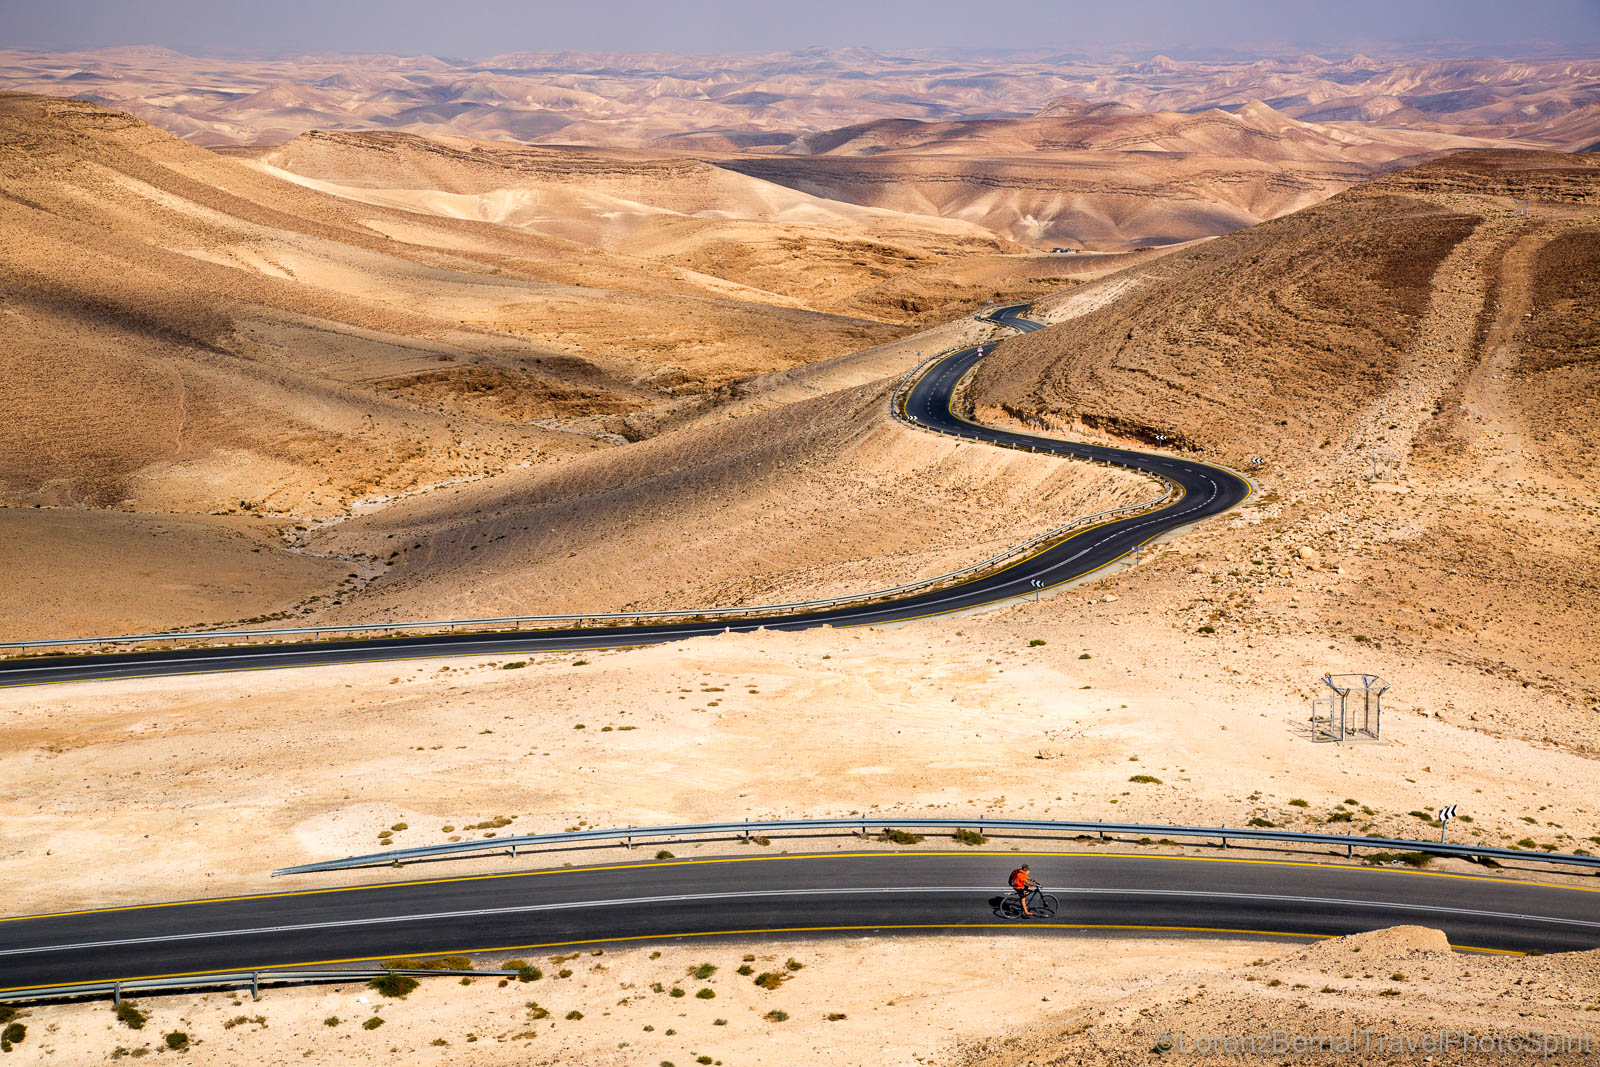 A bicycle rider on the winding roads going through the rocky valleys of the Judean Desert, Israel.